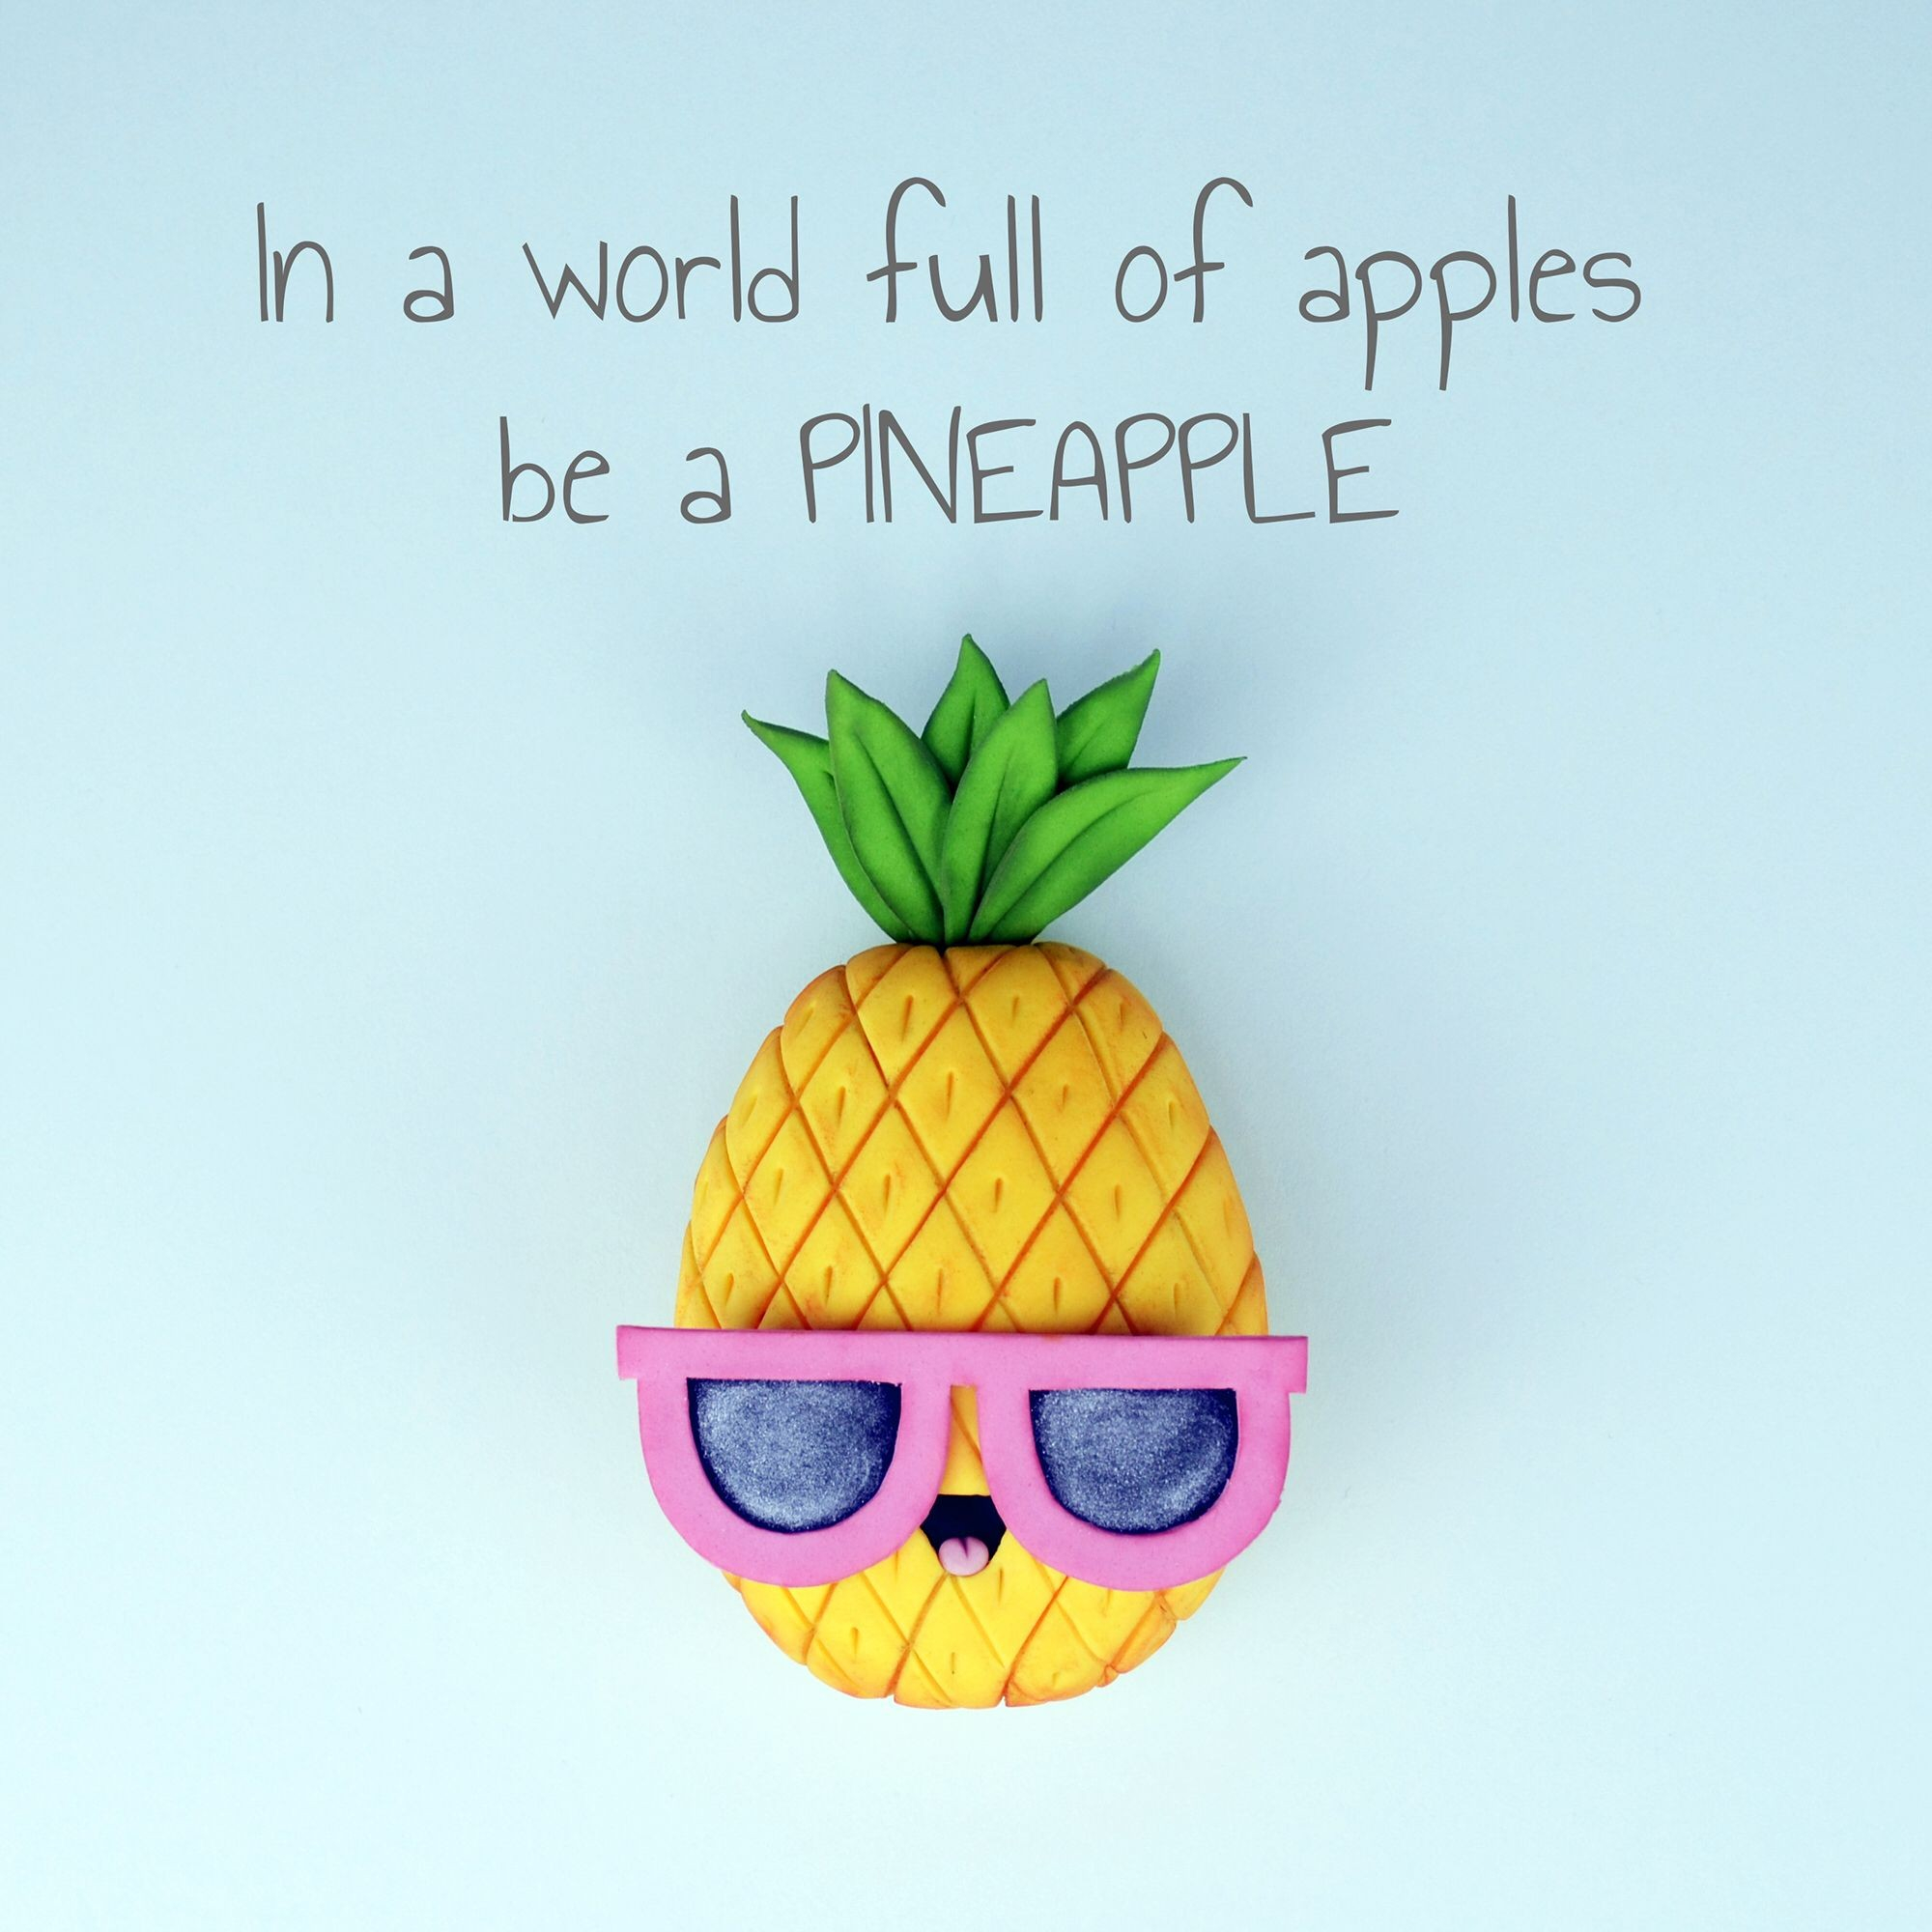 TbRmT rose gold pineapple wallpaper pineapple inspirational quotes